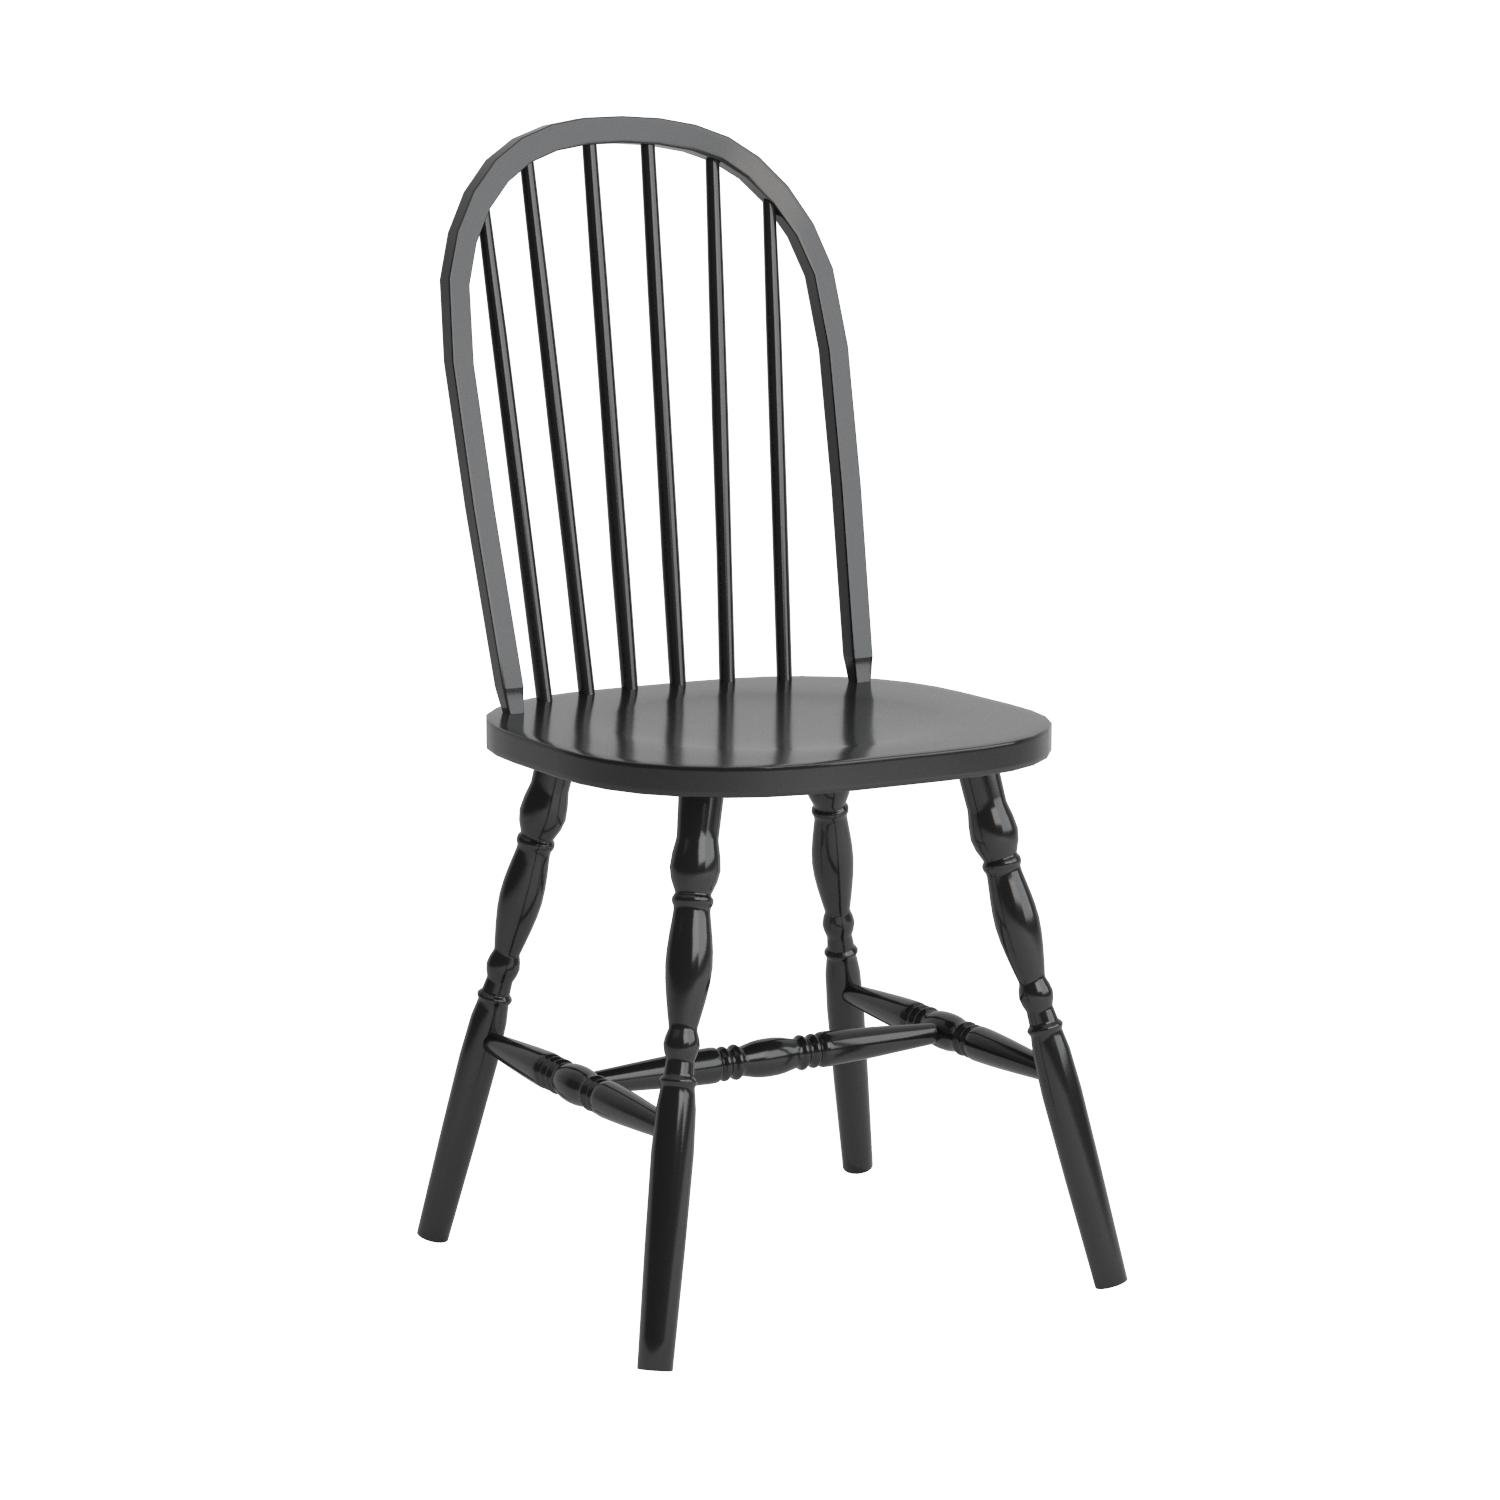 Winsome Wood Assembled 36-Inch Windsor Chairs with Curved legs, Set of 2, Black Finish